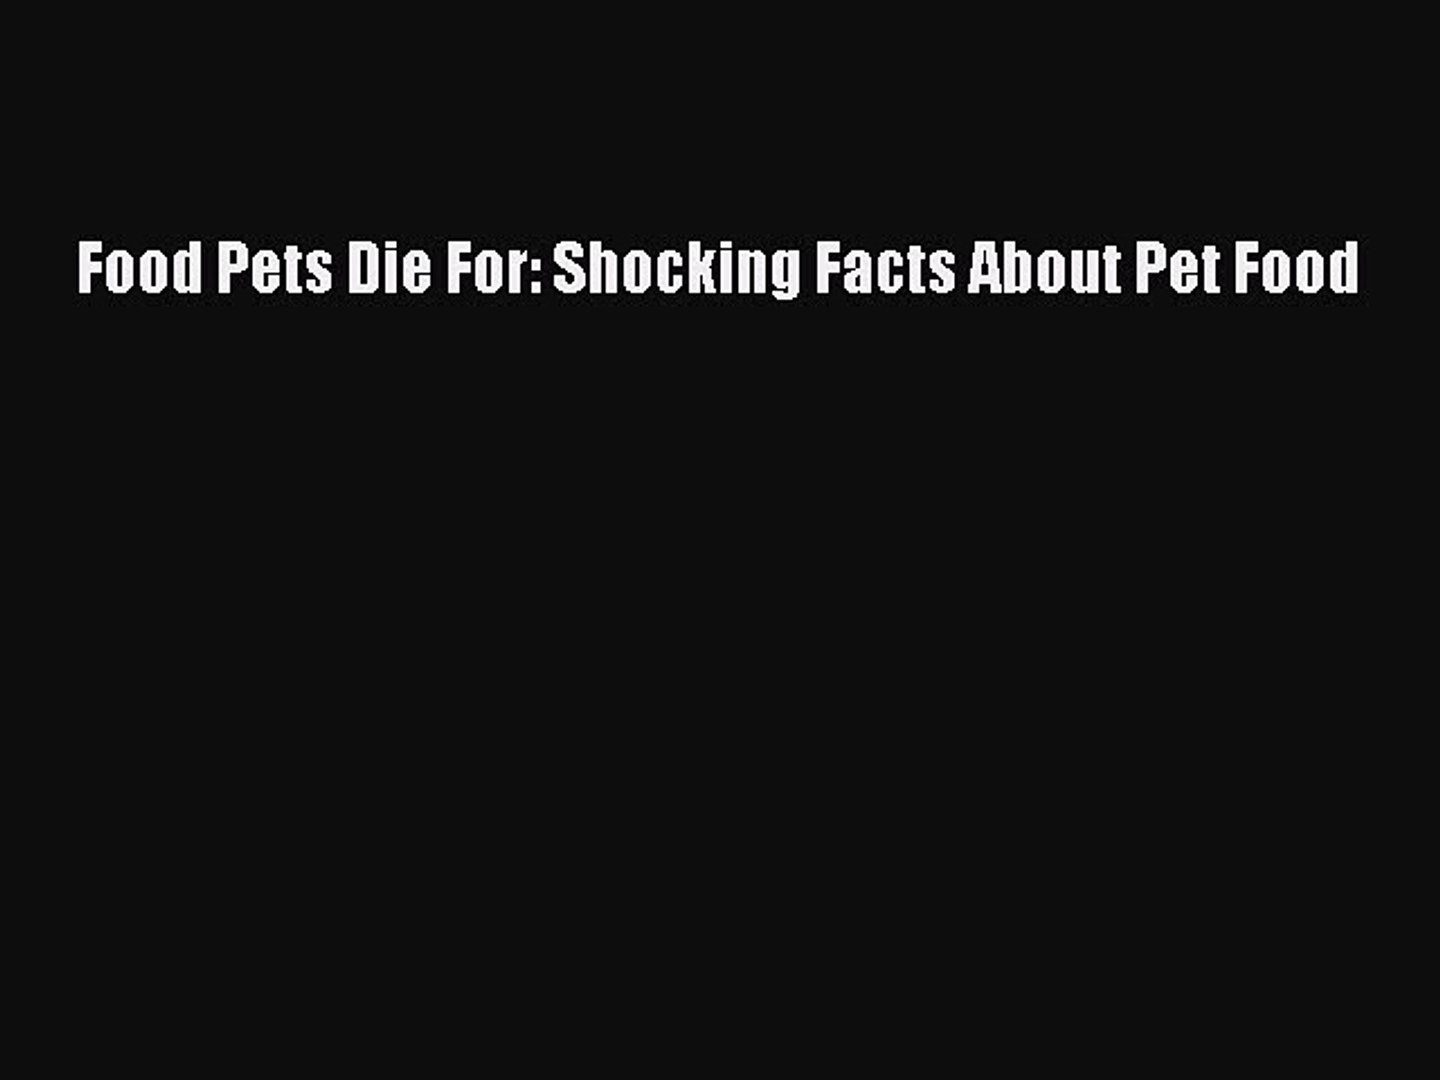 Download Food Pets Die For: Shocking Facts About Pet Food Ebook Free